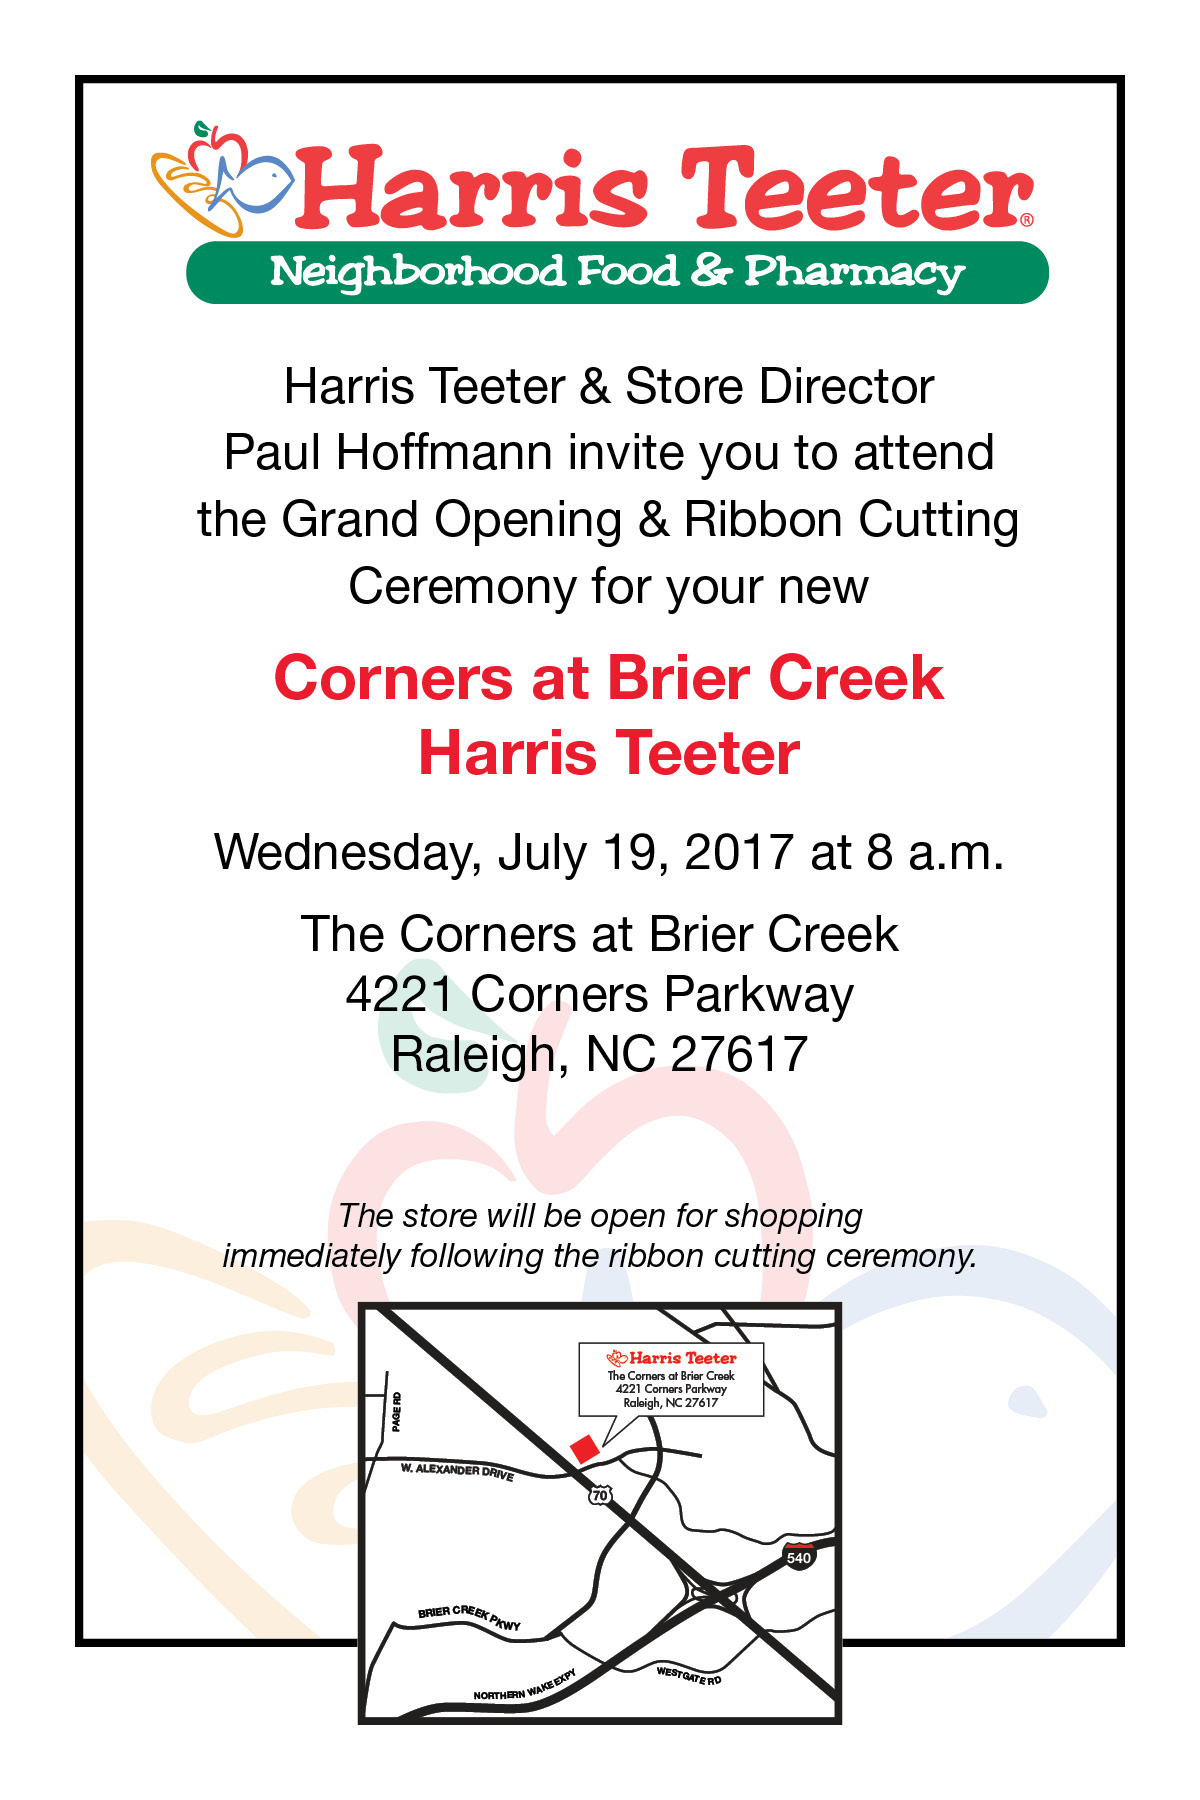 Grand Opening of Harris Teeter Store in Raleigh, N.C. - Harris Teeter